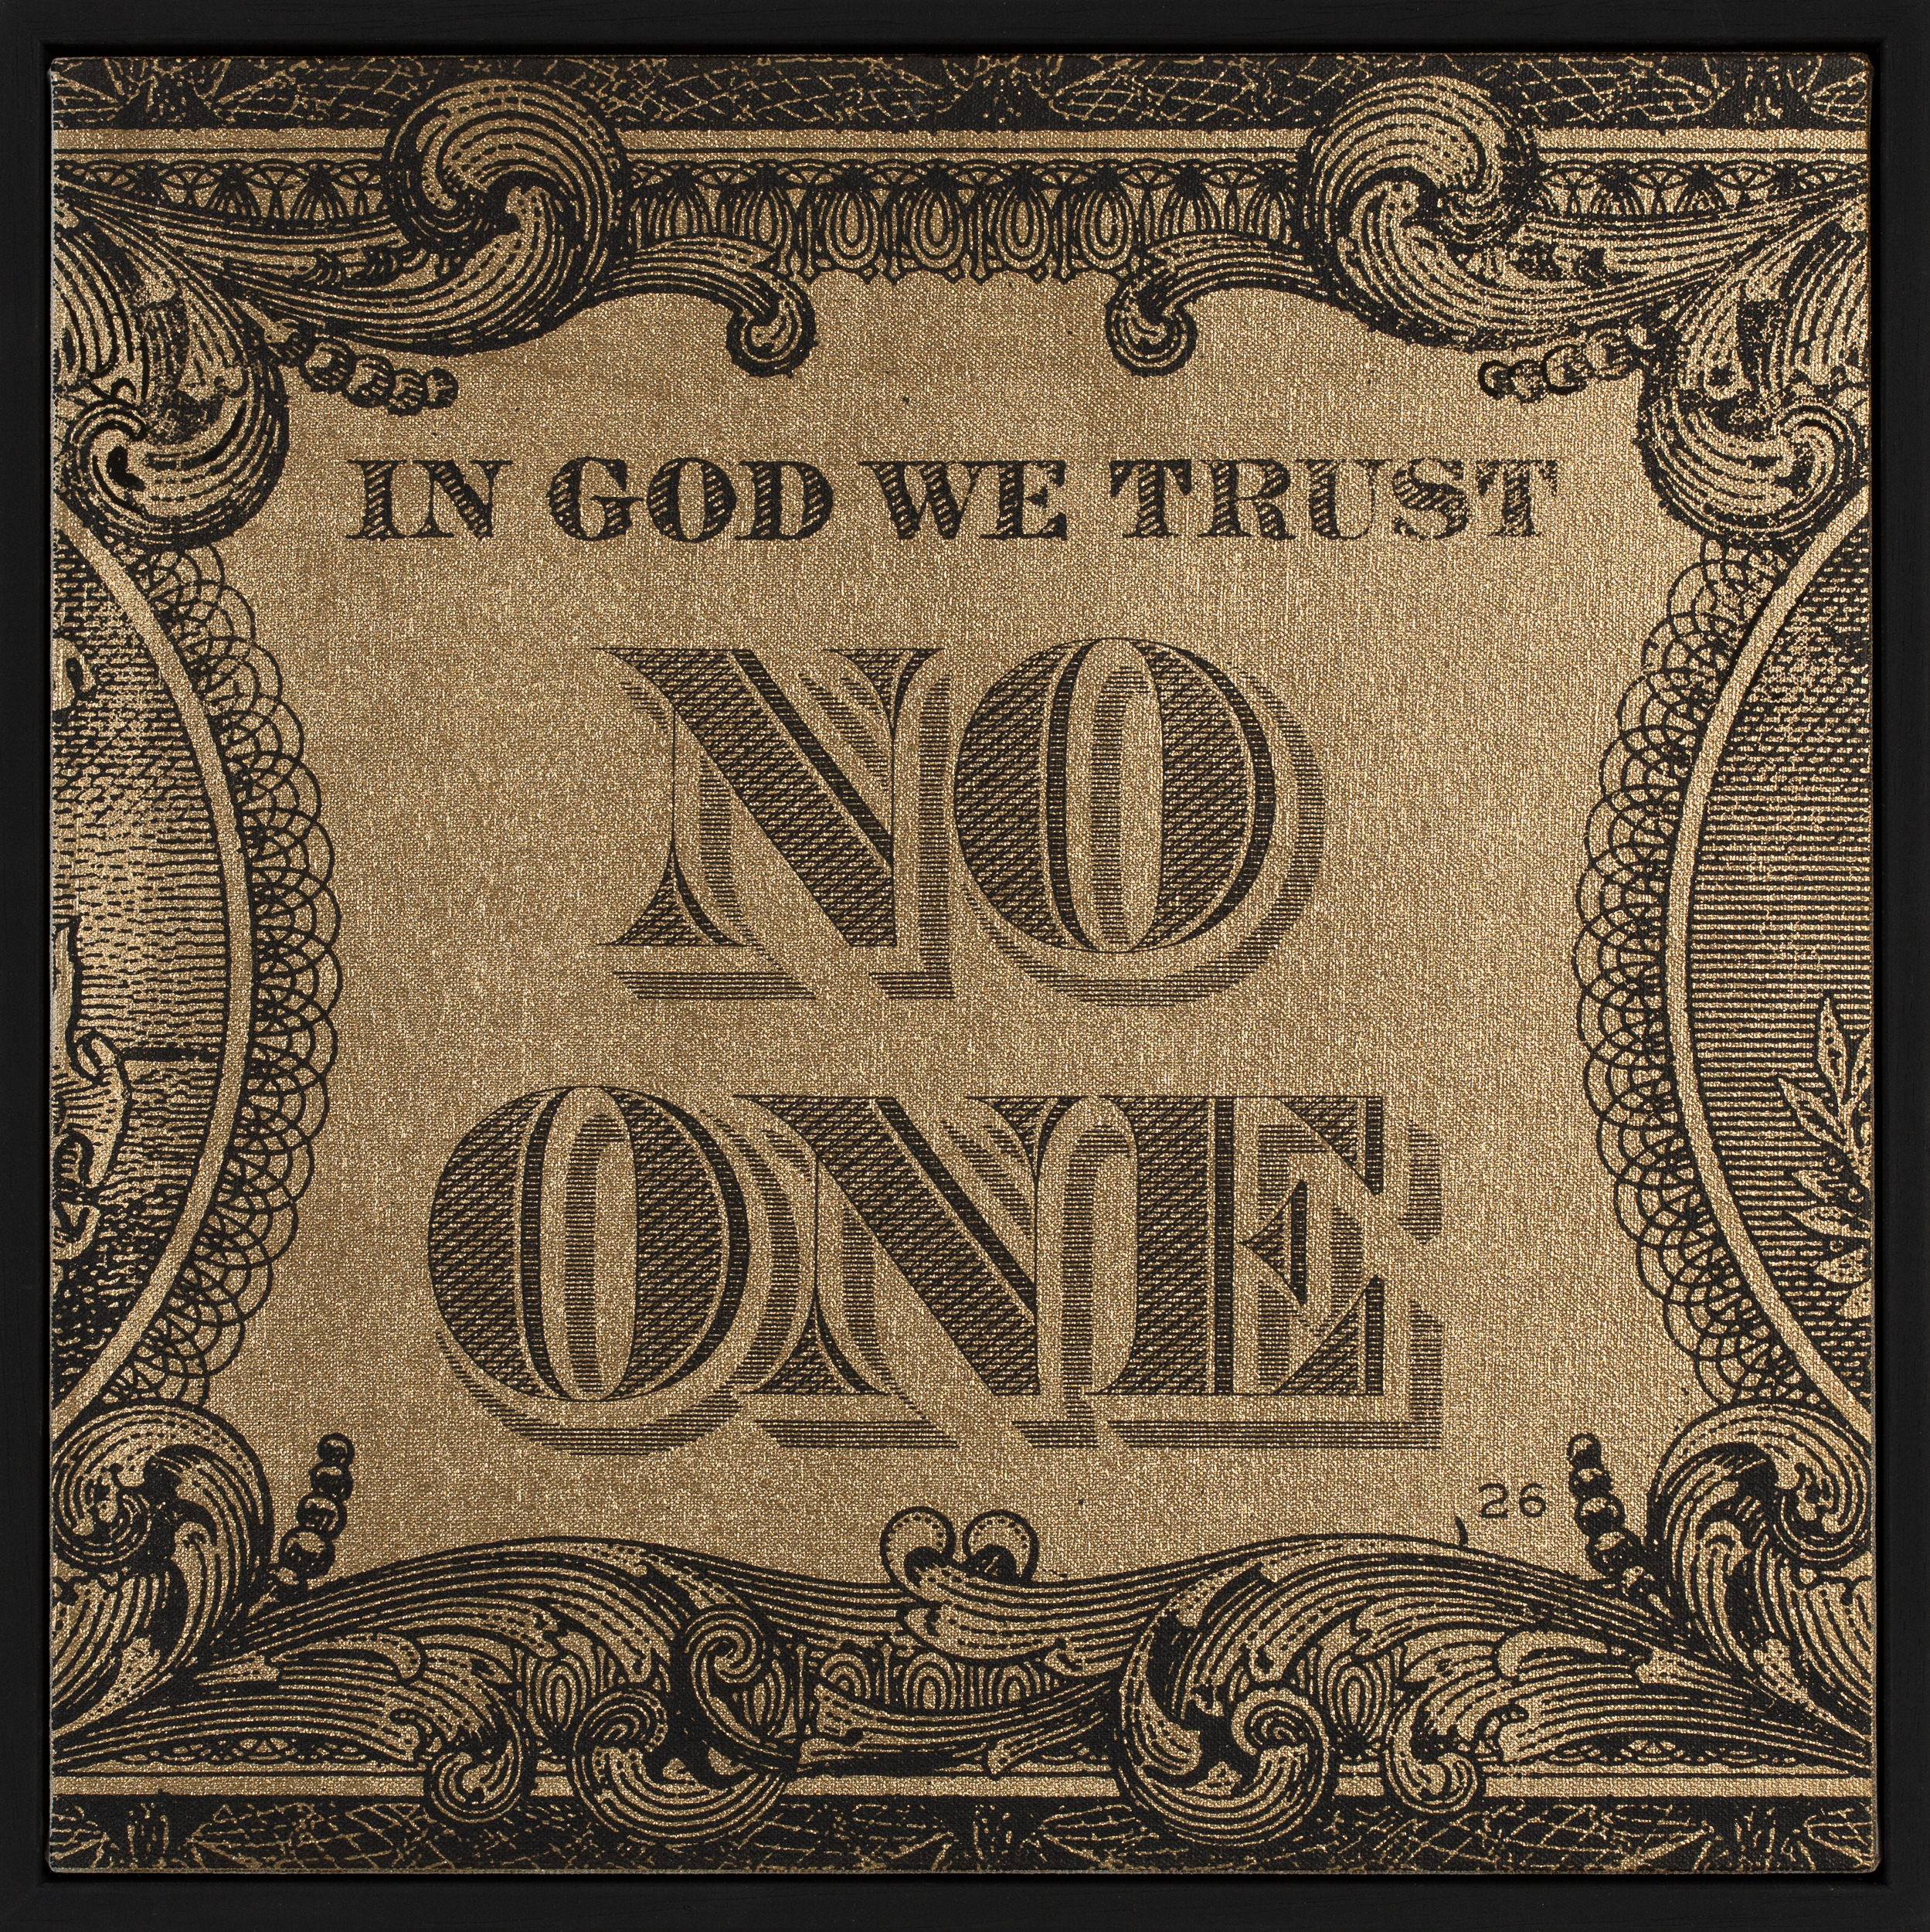 In-God-We-Trust-No-One-Black-On-Gold_Screen_print_acrylic_on_canvas_on_wood_panel_in_black_wood_frame_40cm_x_40cm-£850.jpg